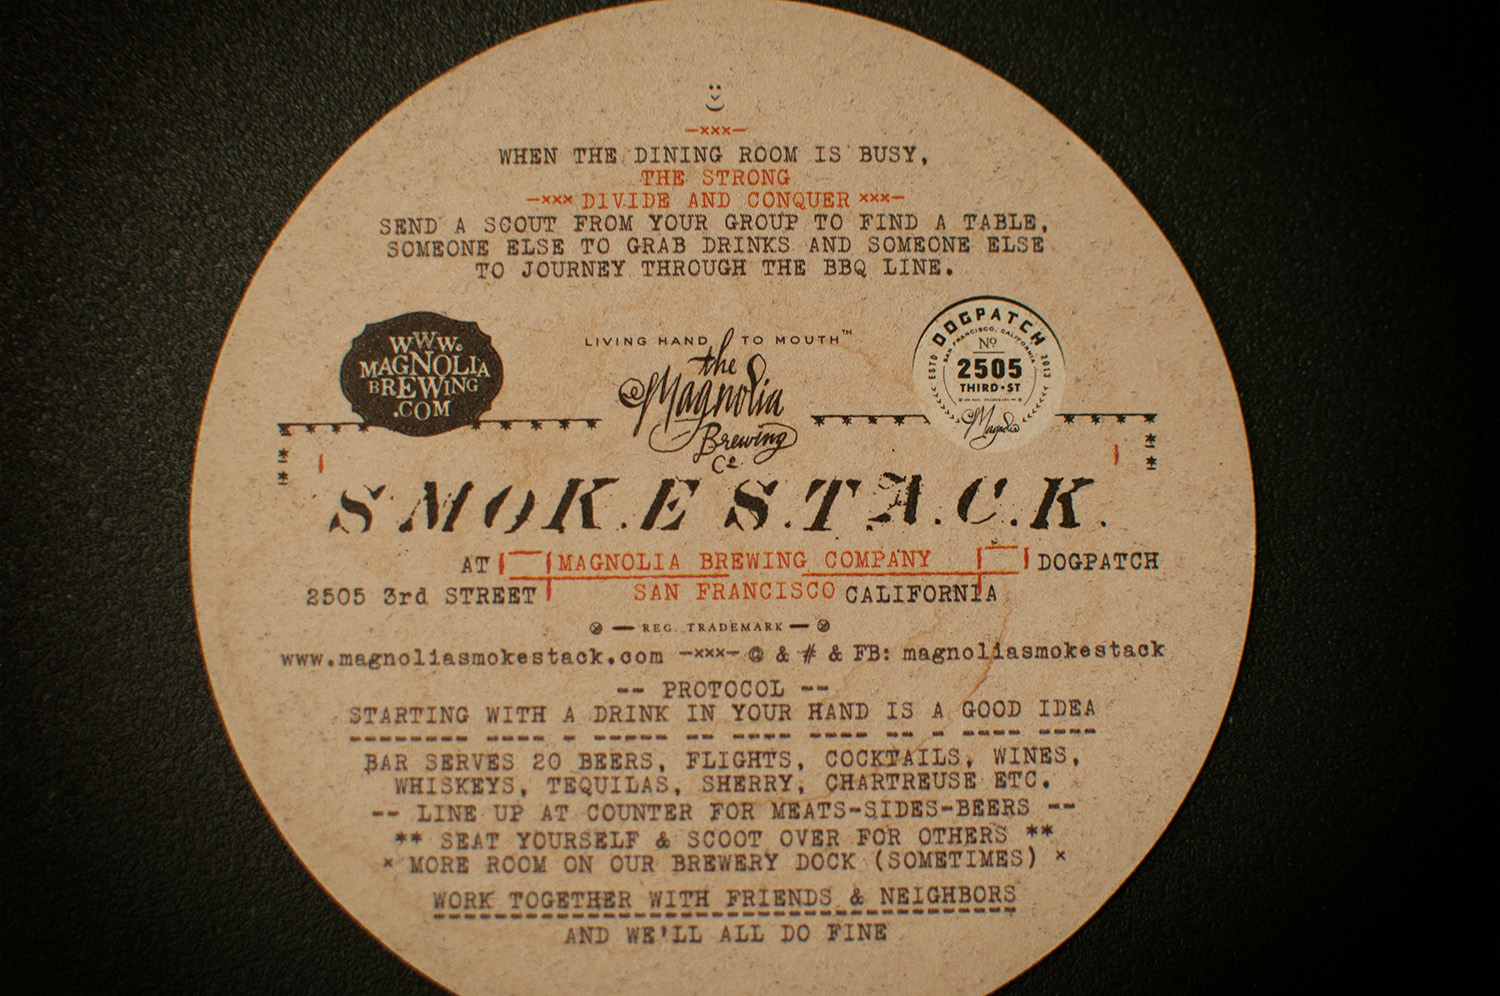 smokestack coaster (3 of 2).jpg